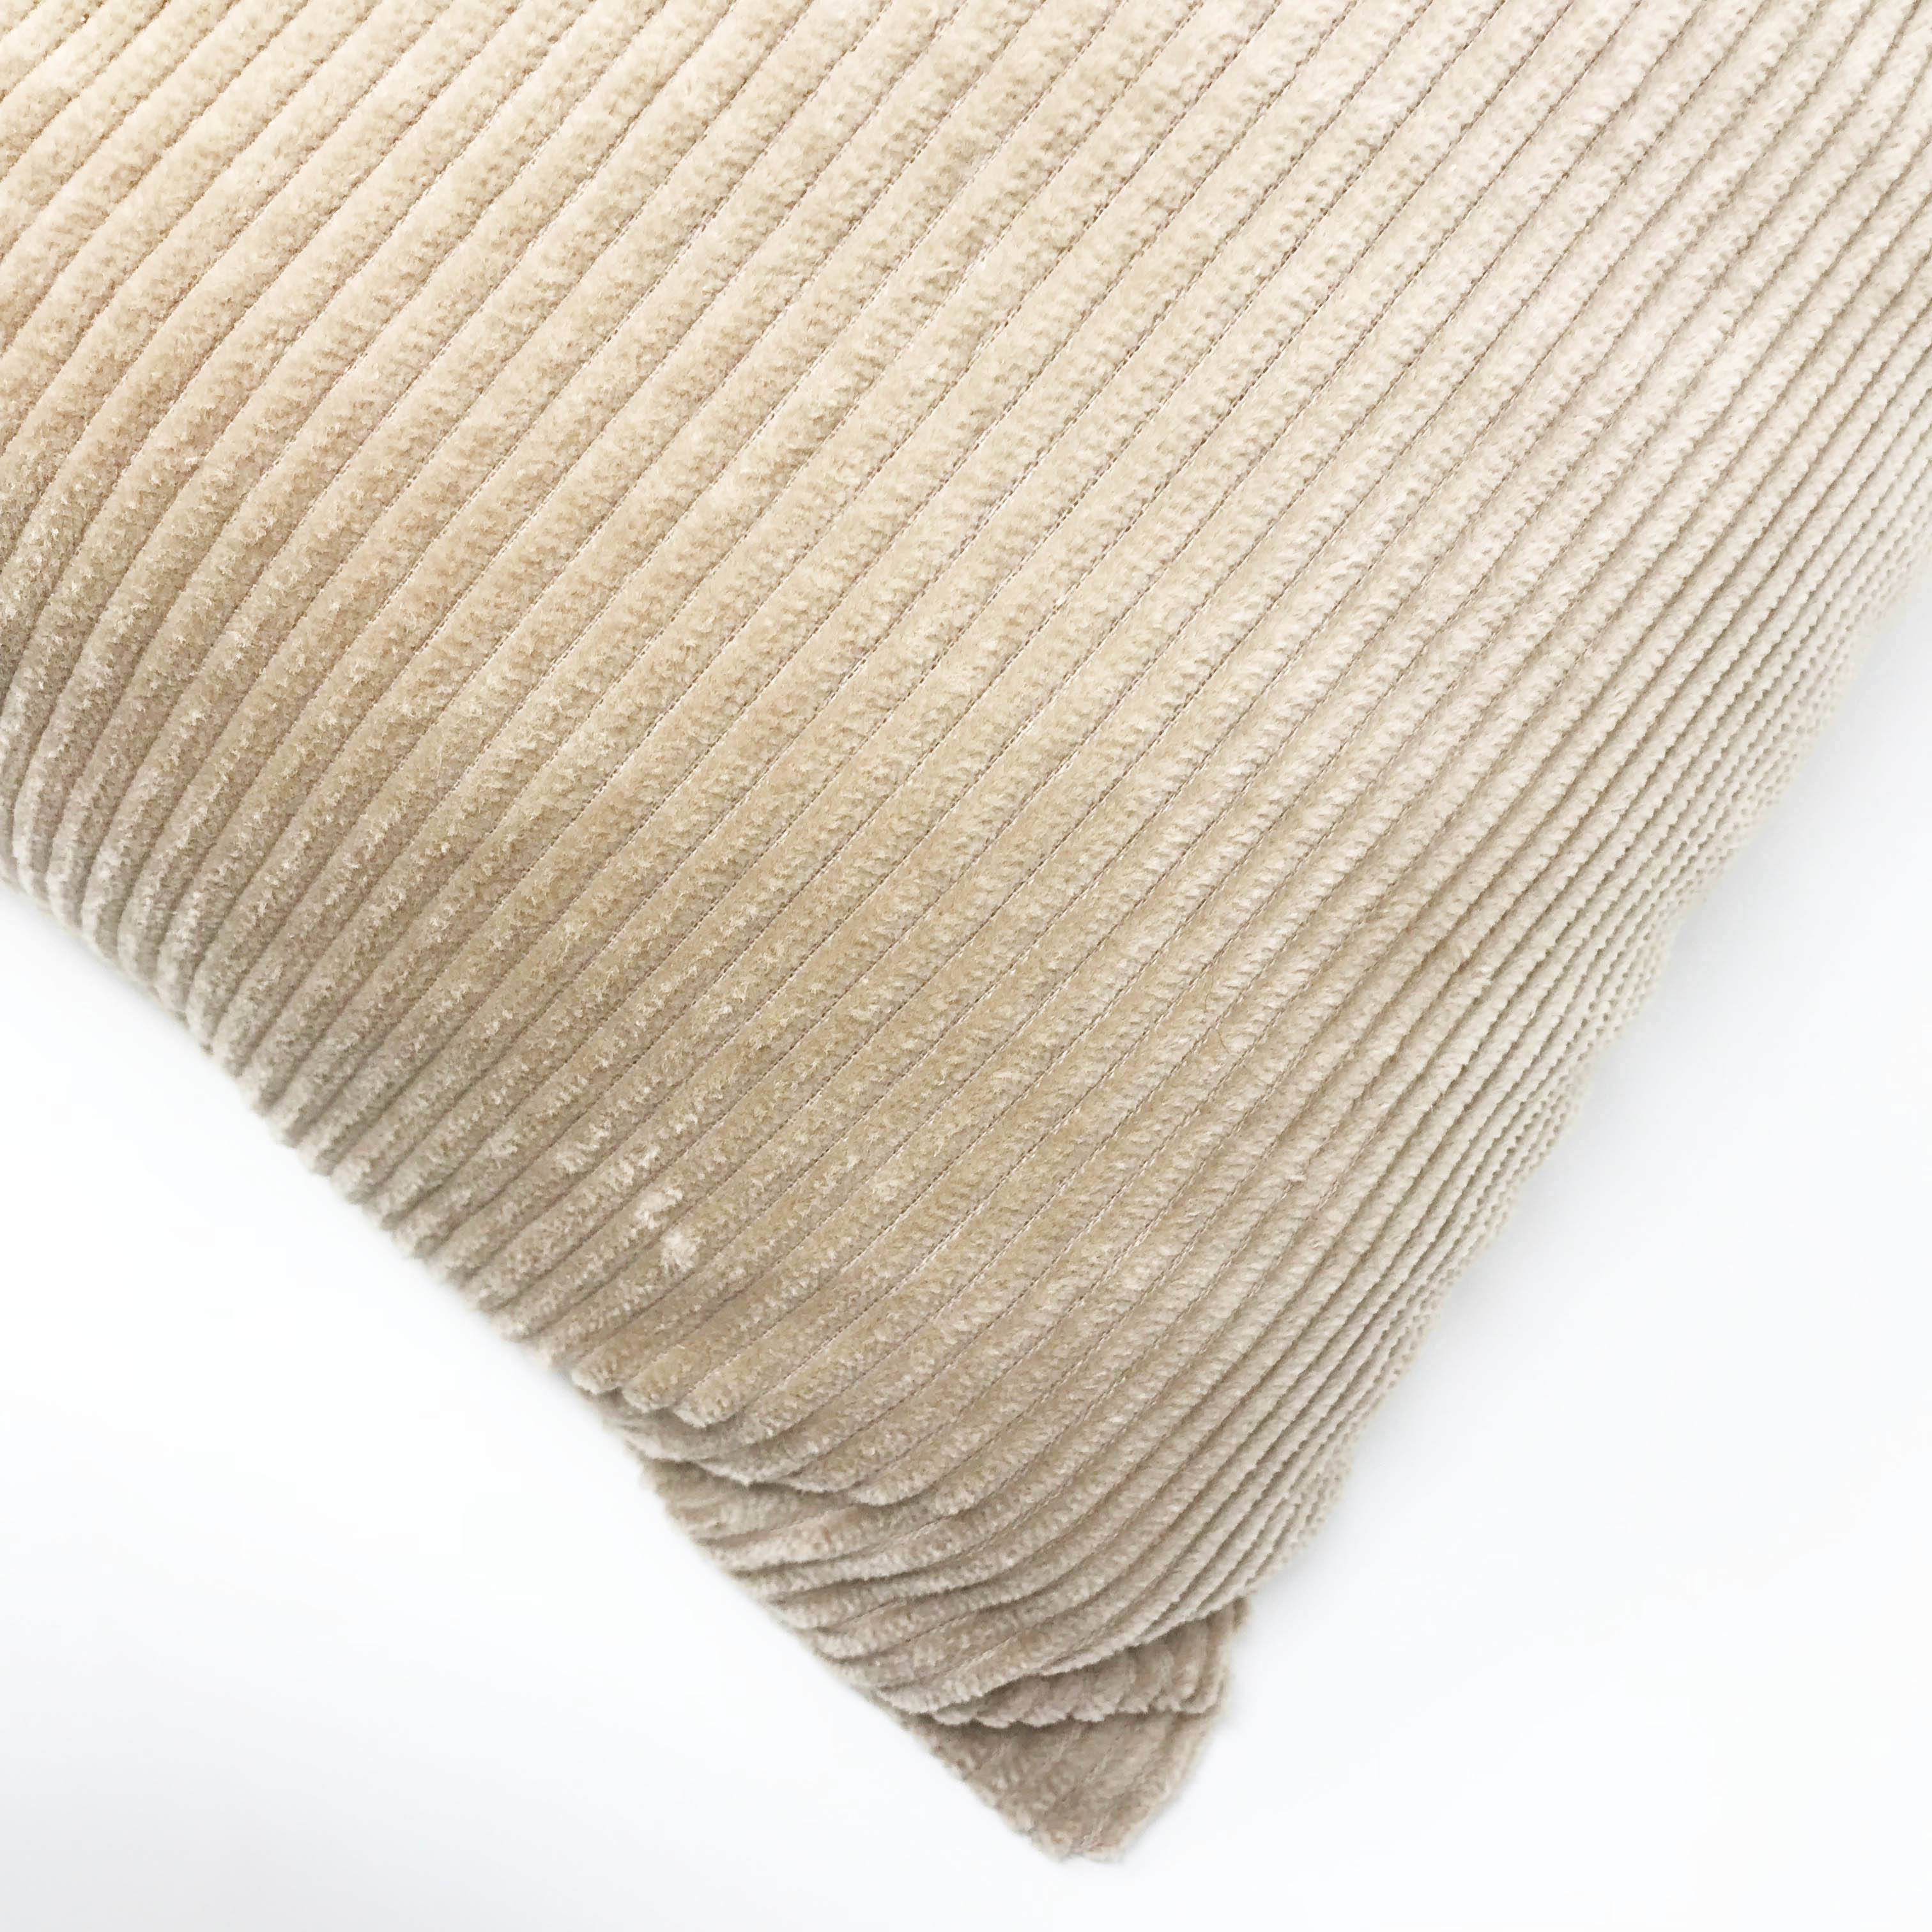 Natural Cords 100% Cotton Beige 55cm x 55cm Cushion with Bounce Back Filling